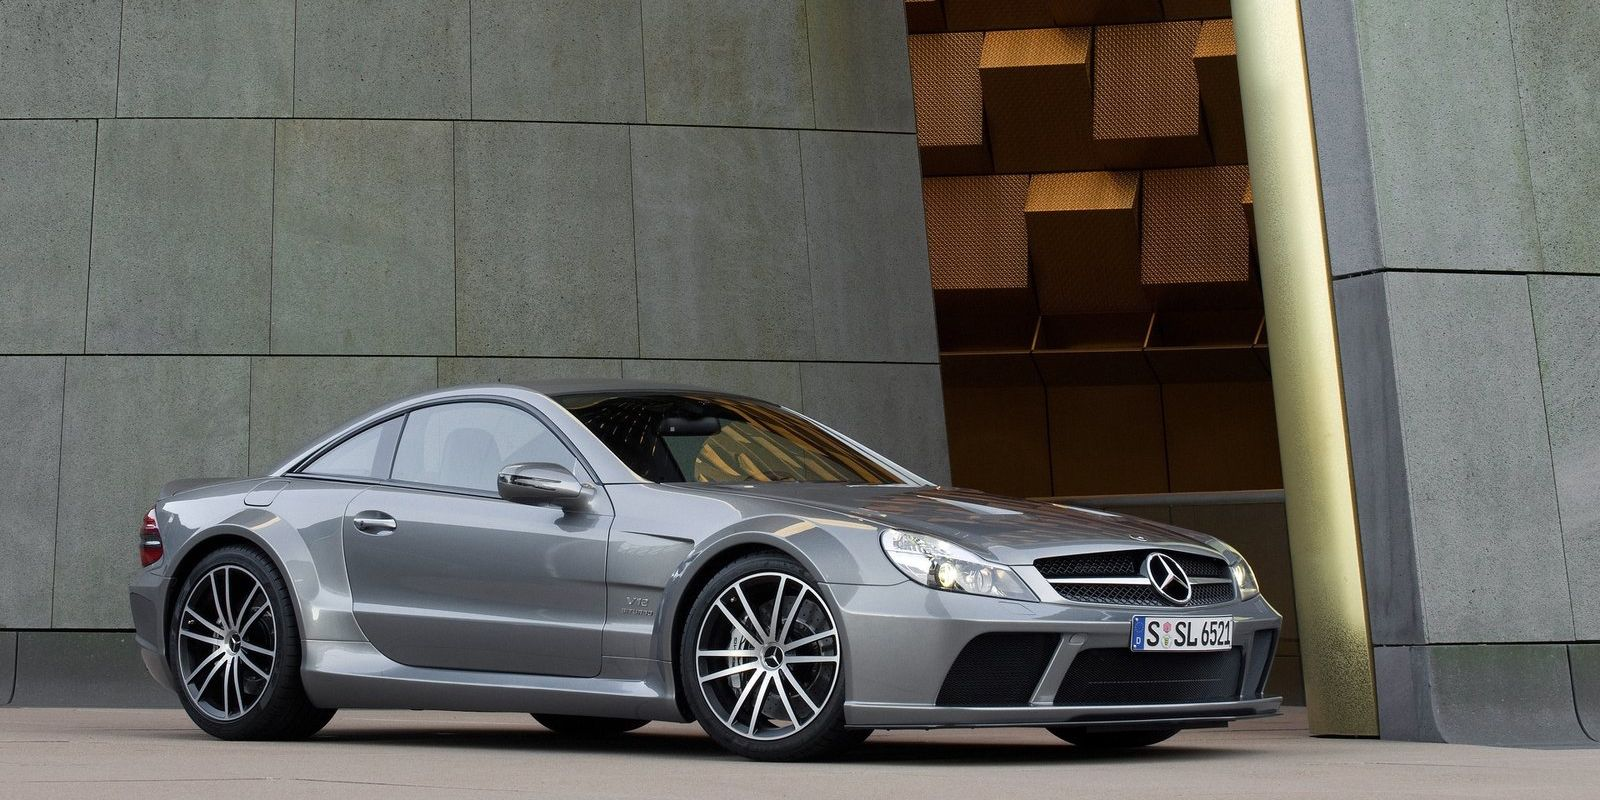 """<p>It was $300,000 when new, but the SL65 AMG Black Series also <a href=""""http://www.roadandtrack.com/new-cars/reviews/a14493/2009-mercedes-benz-sl65-amg-black-series-2/"""">had a twin-turbocharged V12</a> that made 661-hp and an earth-shattering 738 lb-ft of torque. And this car was the epitome of aggressive. It had ridiculously large front air intakes and fenders so wide you could sit on them. It was an ultimate rear-tire slayer. This is the muscle you'd hire to intimidate someone.</p>"""